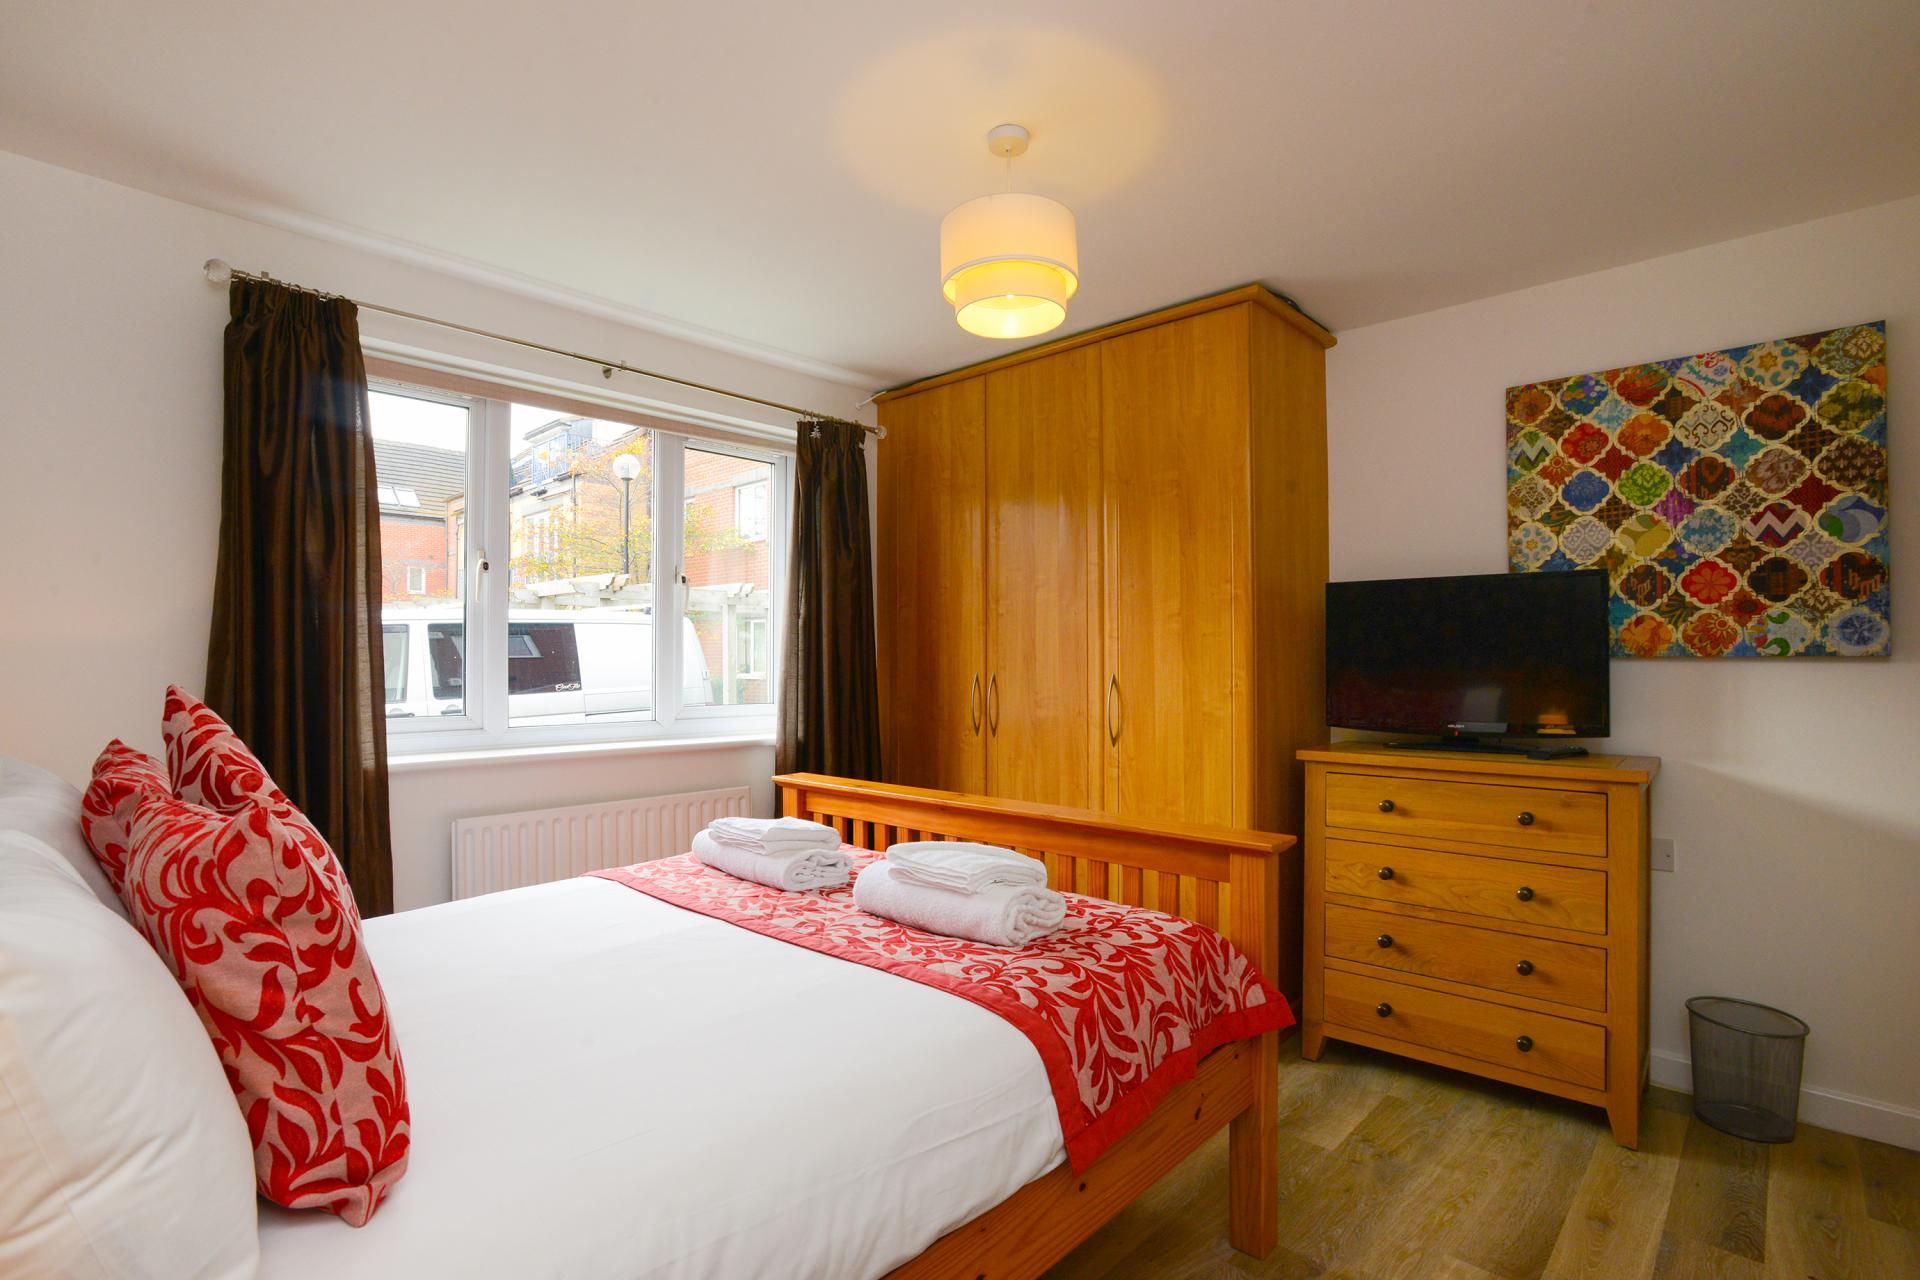 Bedroom at Edward's Court Apartment, West Bridgford, Nottingham - Citybase Apartments